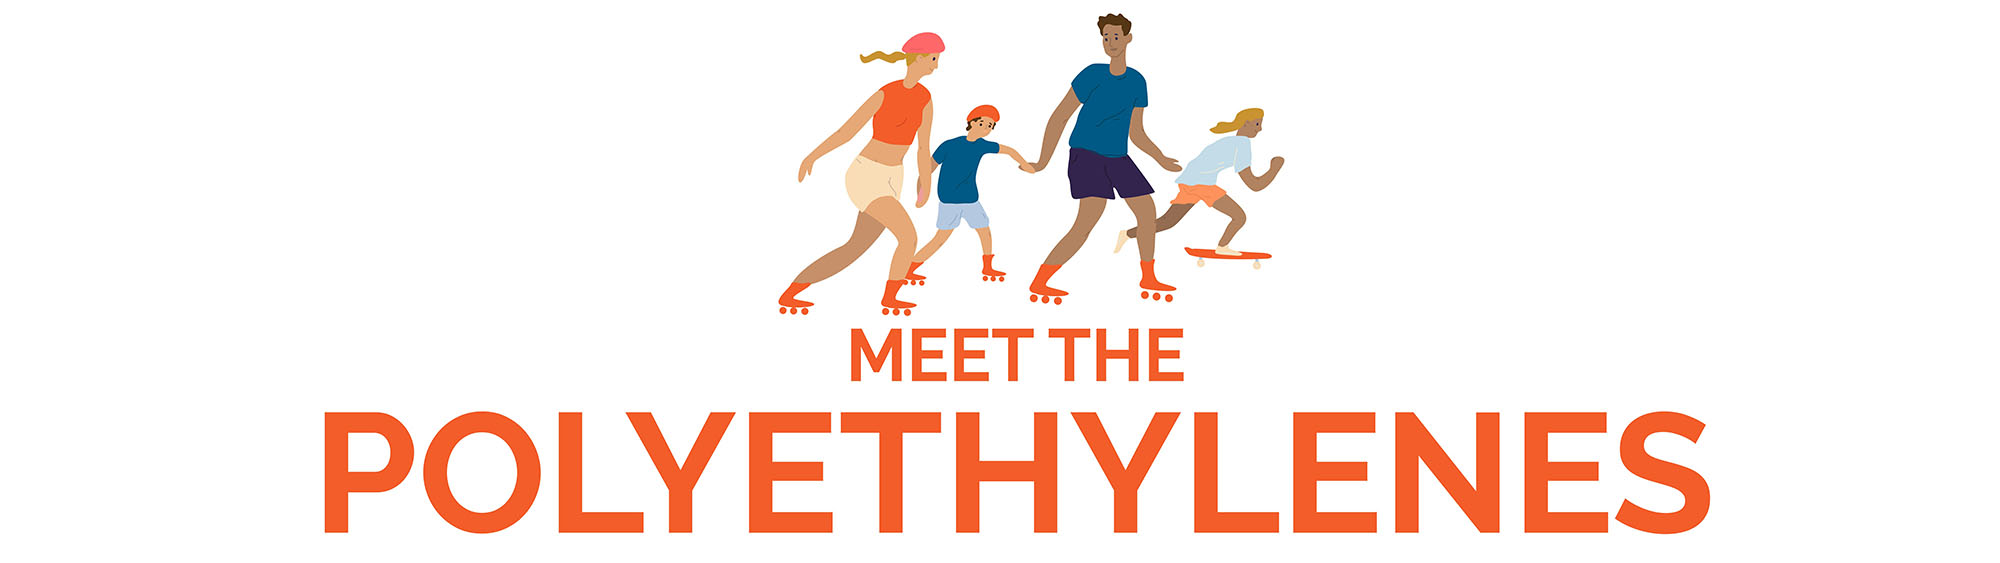 Title for Meet the Polyethylenes with graphics of a family rollerblading together